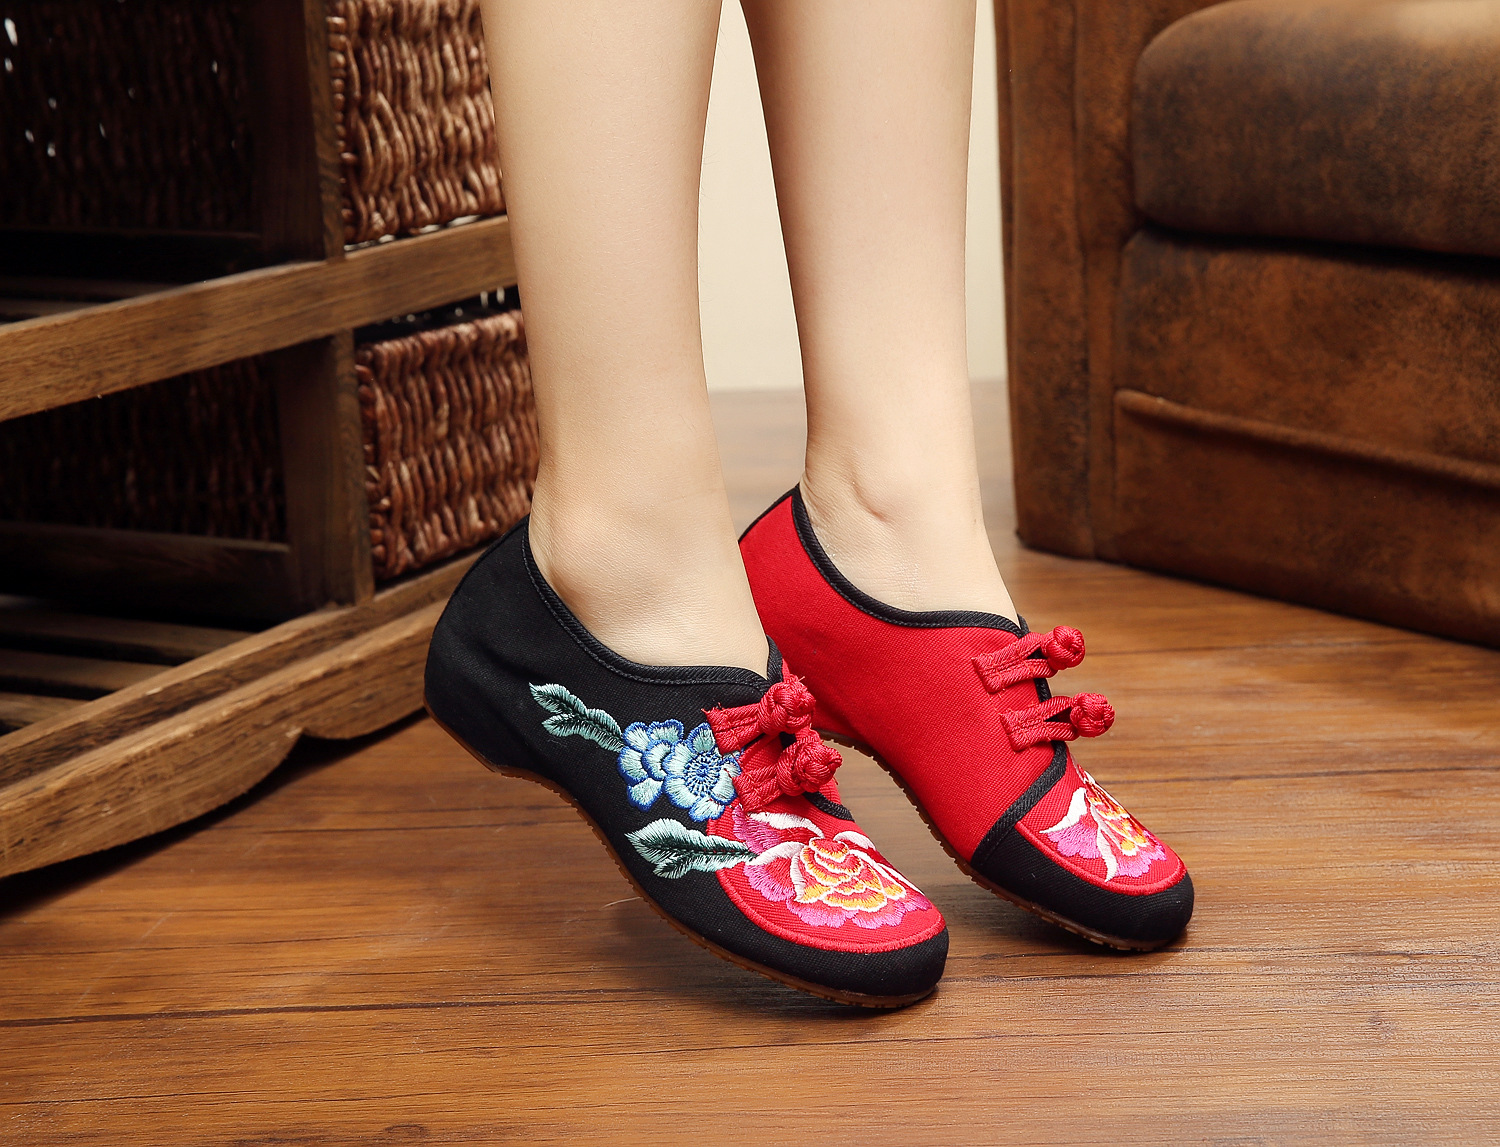 2016 Spring New Hit Color WomenS Flats Wedge Heels Foot Cover Black Peony Embroidery High Quality Leisure Shoes SMYXHX-D0133<br><br>Aliexpress